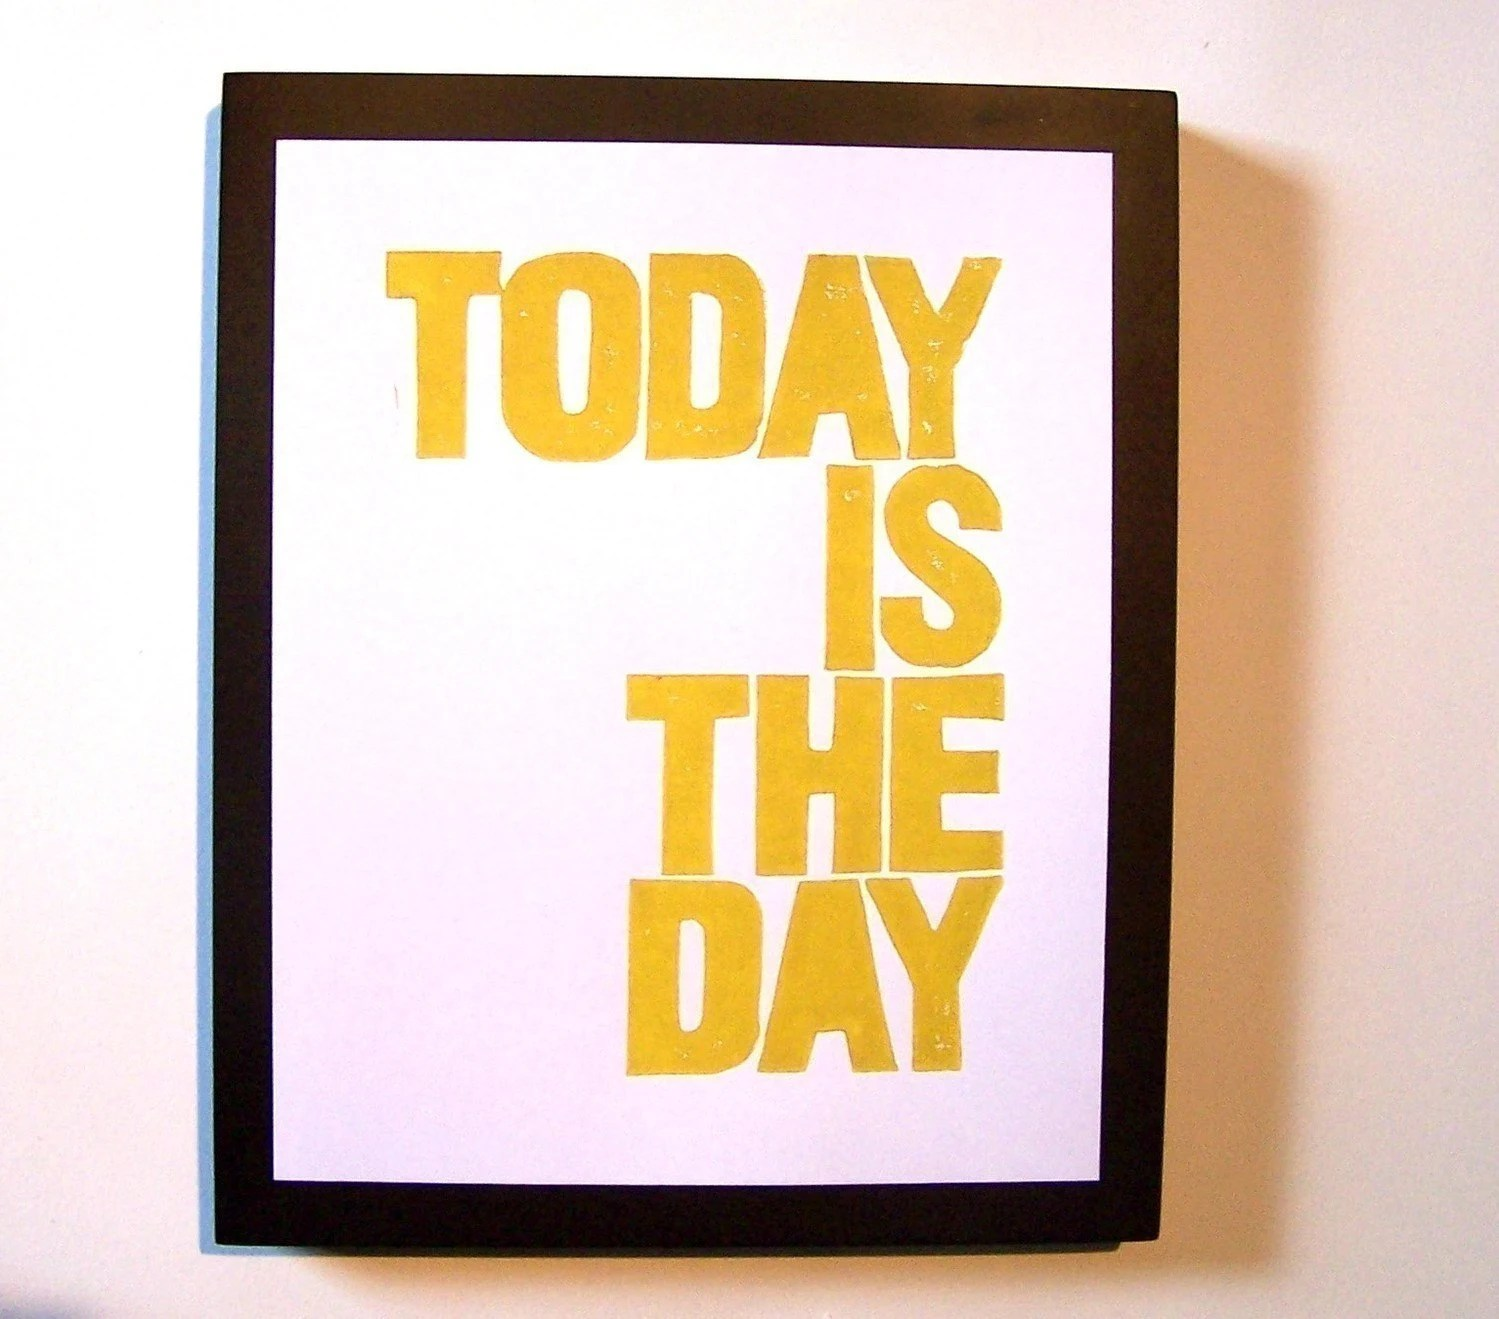 PRINT - Today is the day BRIGHT YELLOW BLOCK PRINT linocut 8x10